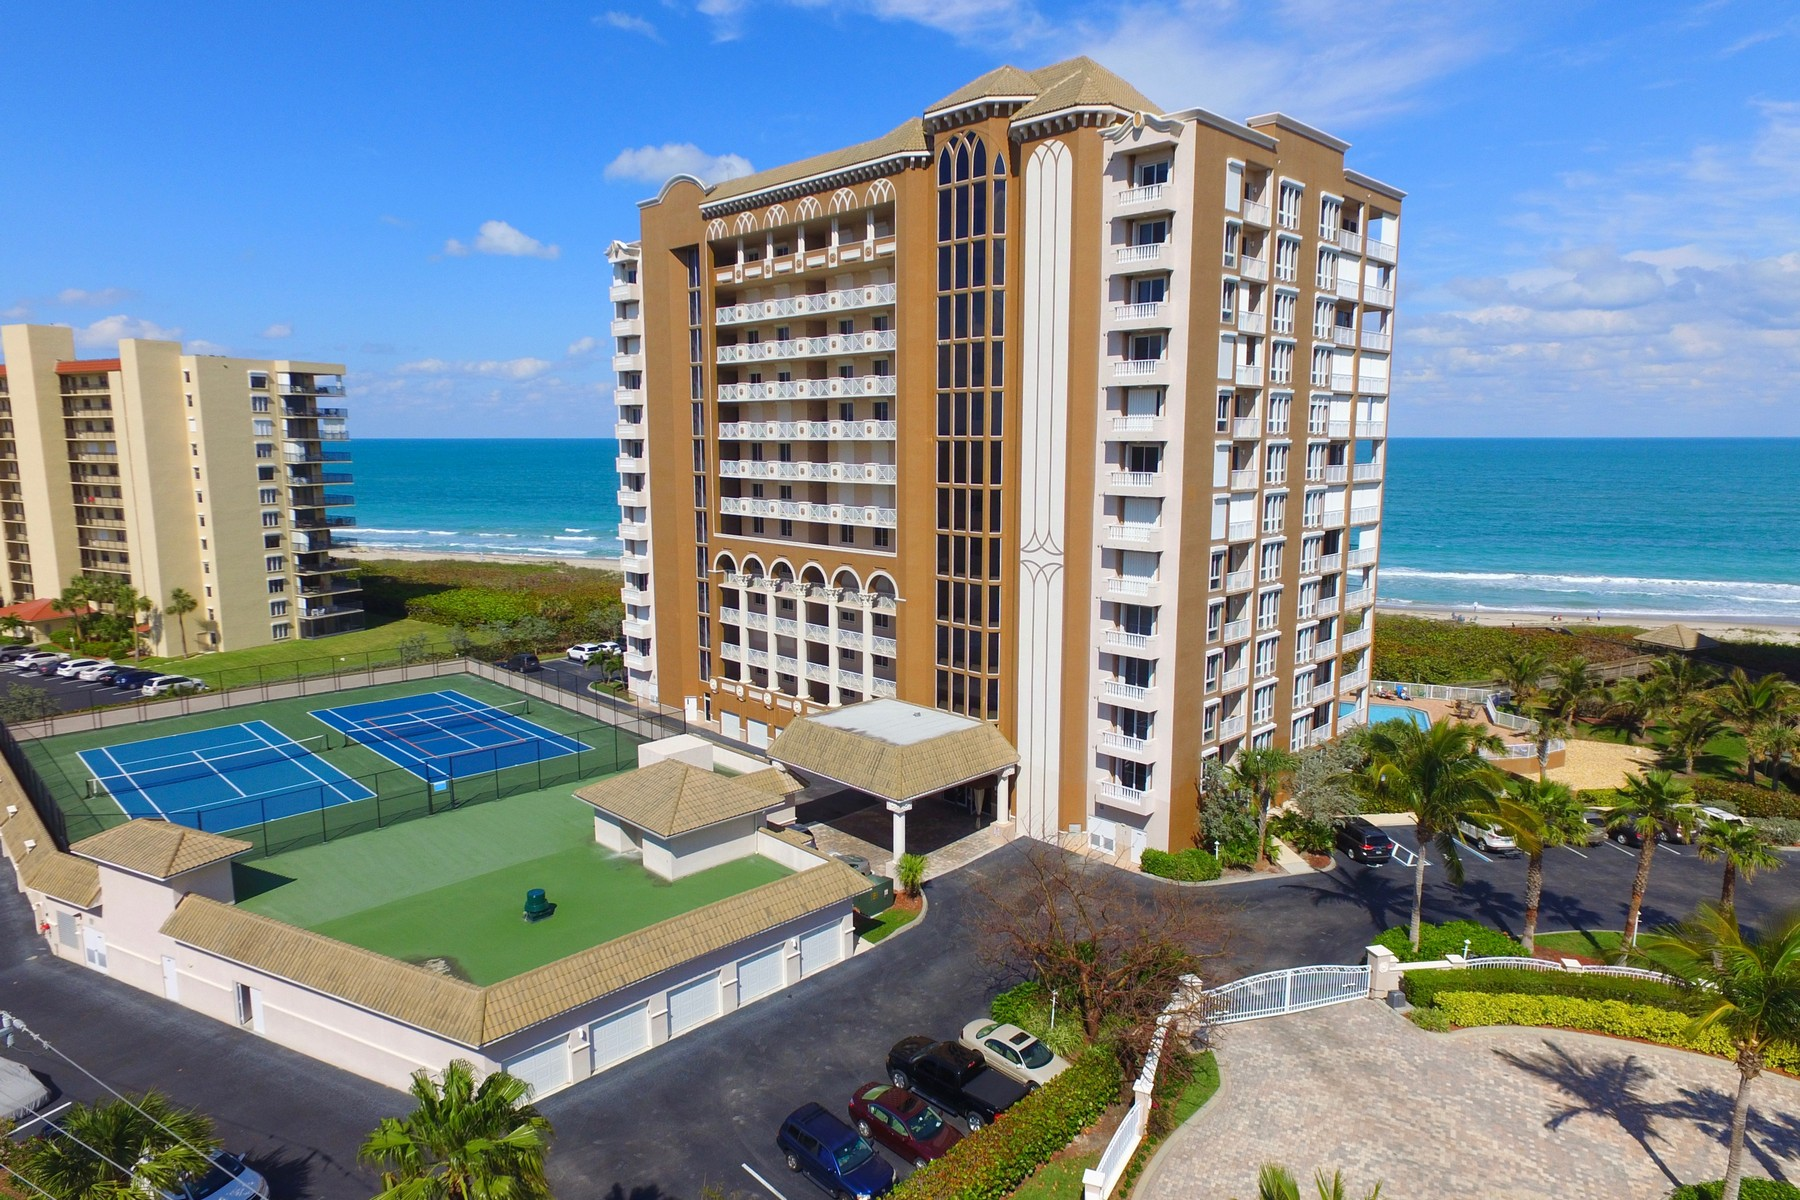 Captivating Ocean Views Will Leave You Mesmerized! 4180 N Highway A1A #704B Hutchinson Island, Florida 34949 United States